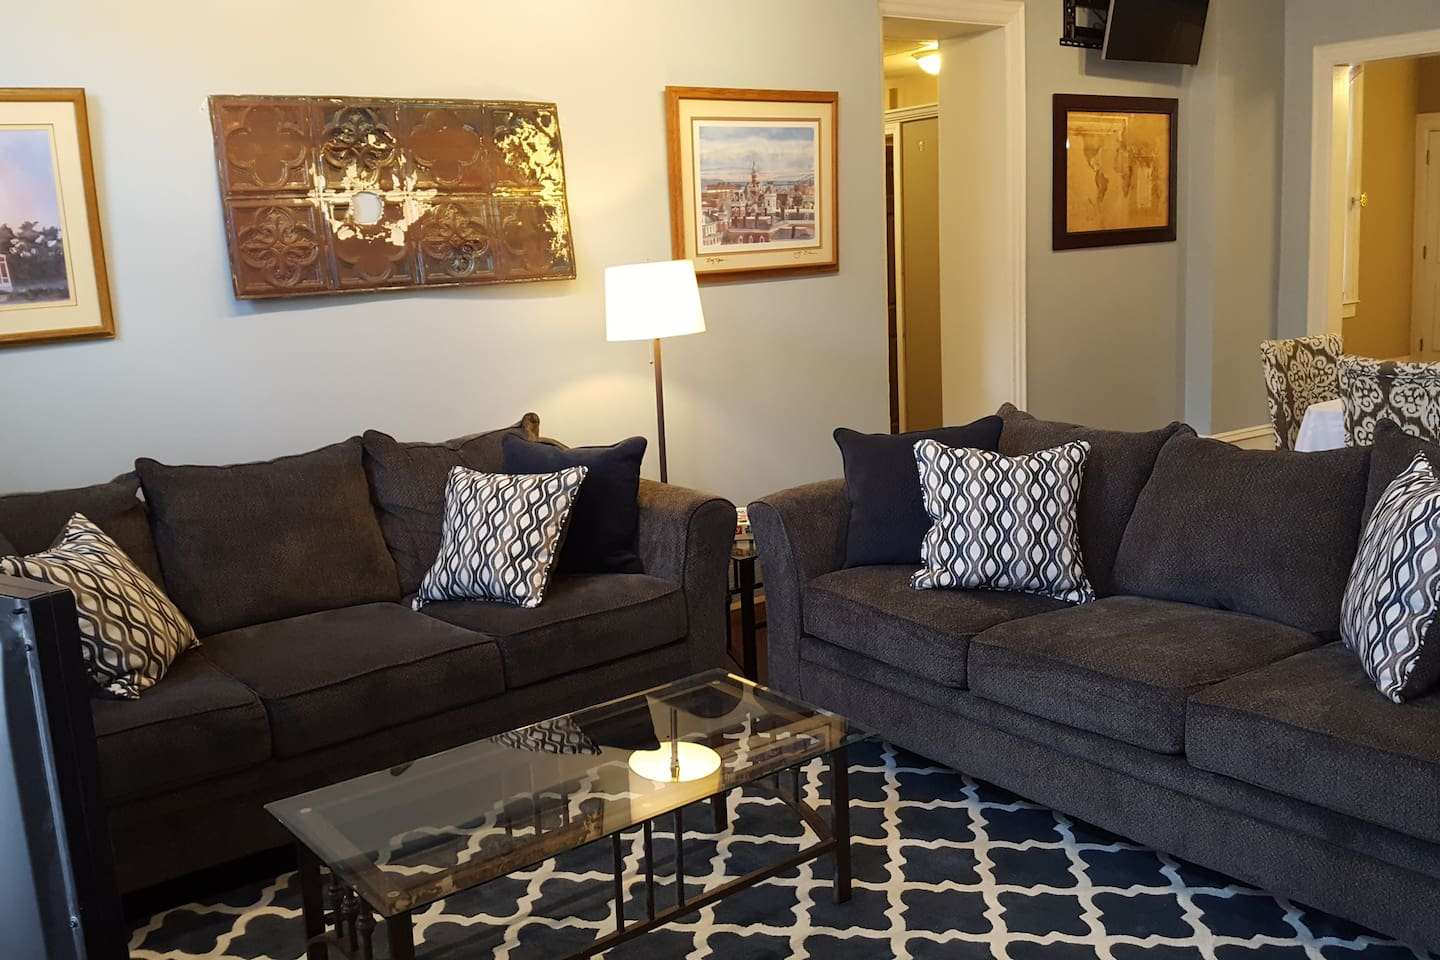 Comfiest couches ever. We got one for our house and went back and got two more for you!